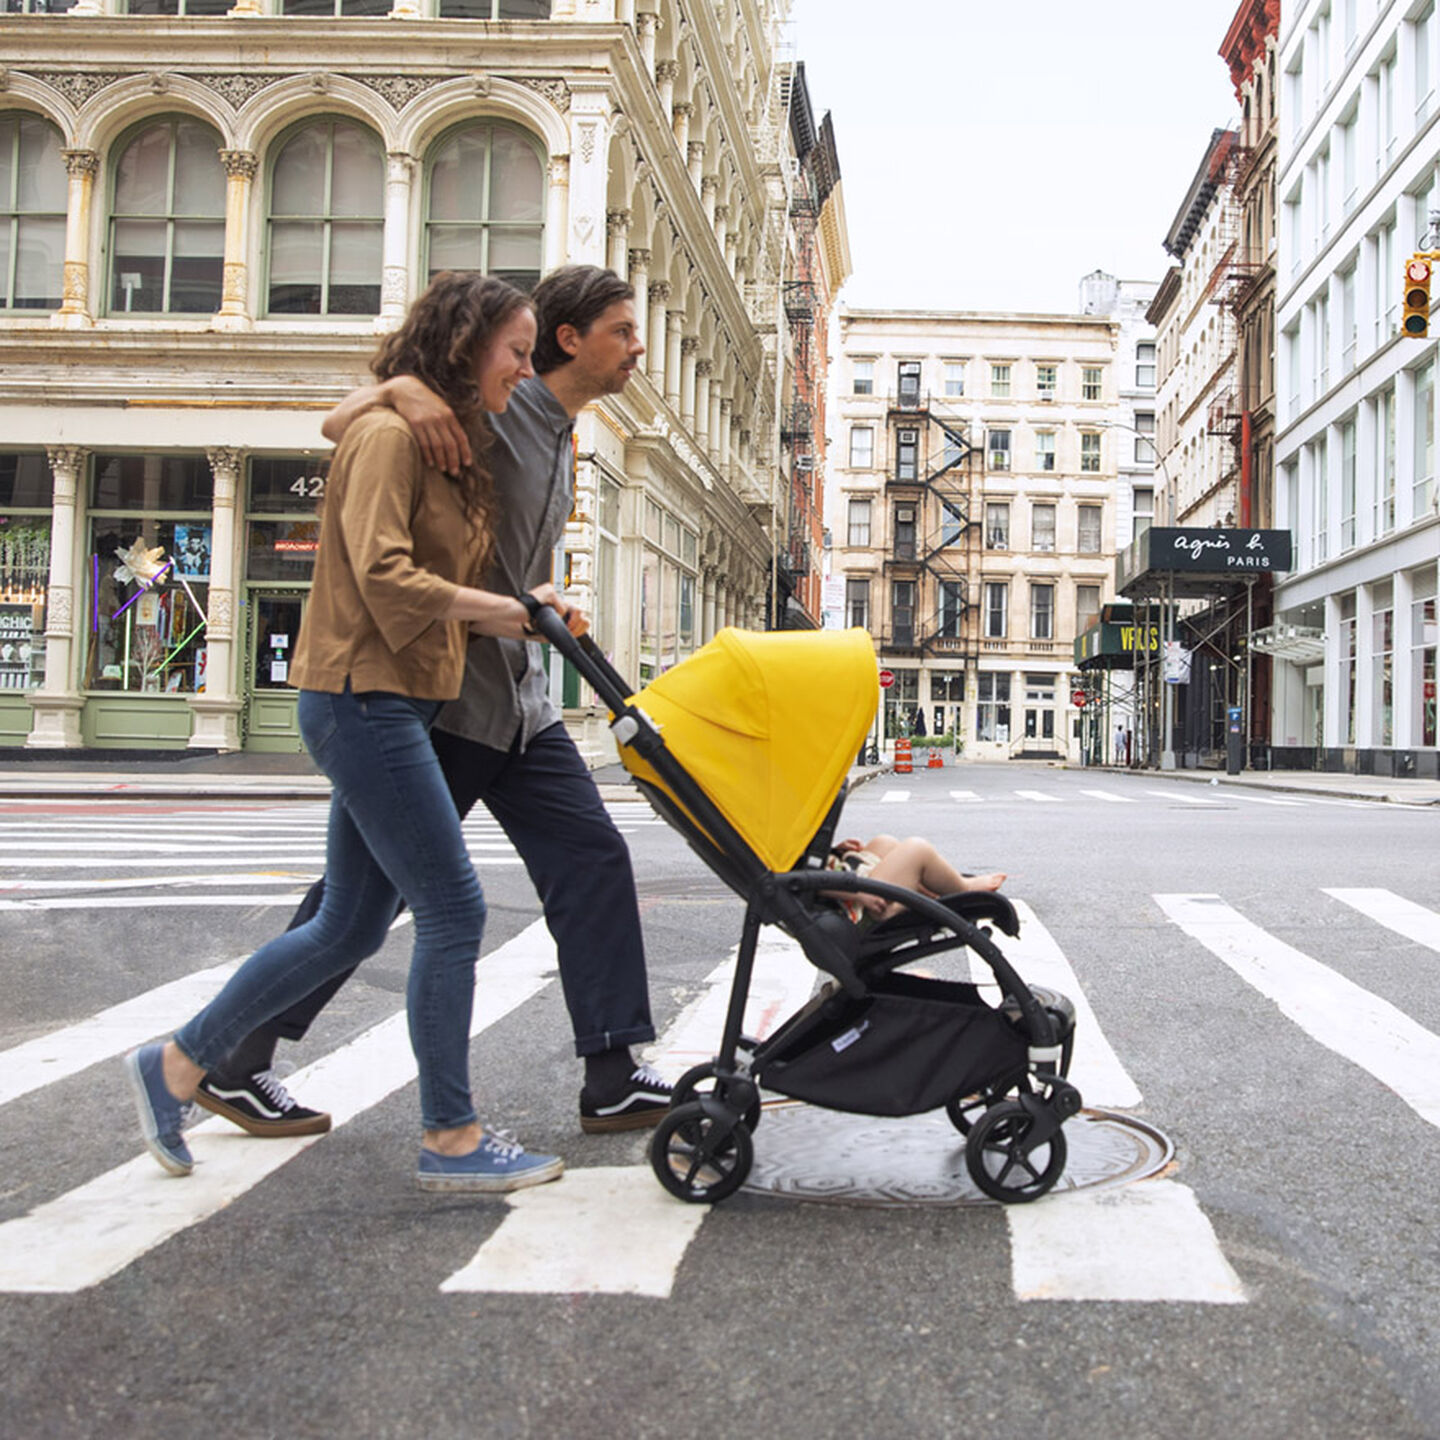 Couple pushing stroller on crosswalk